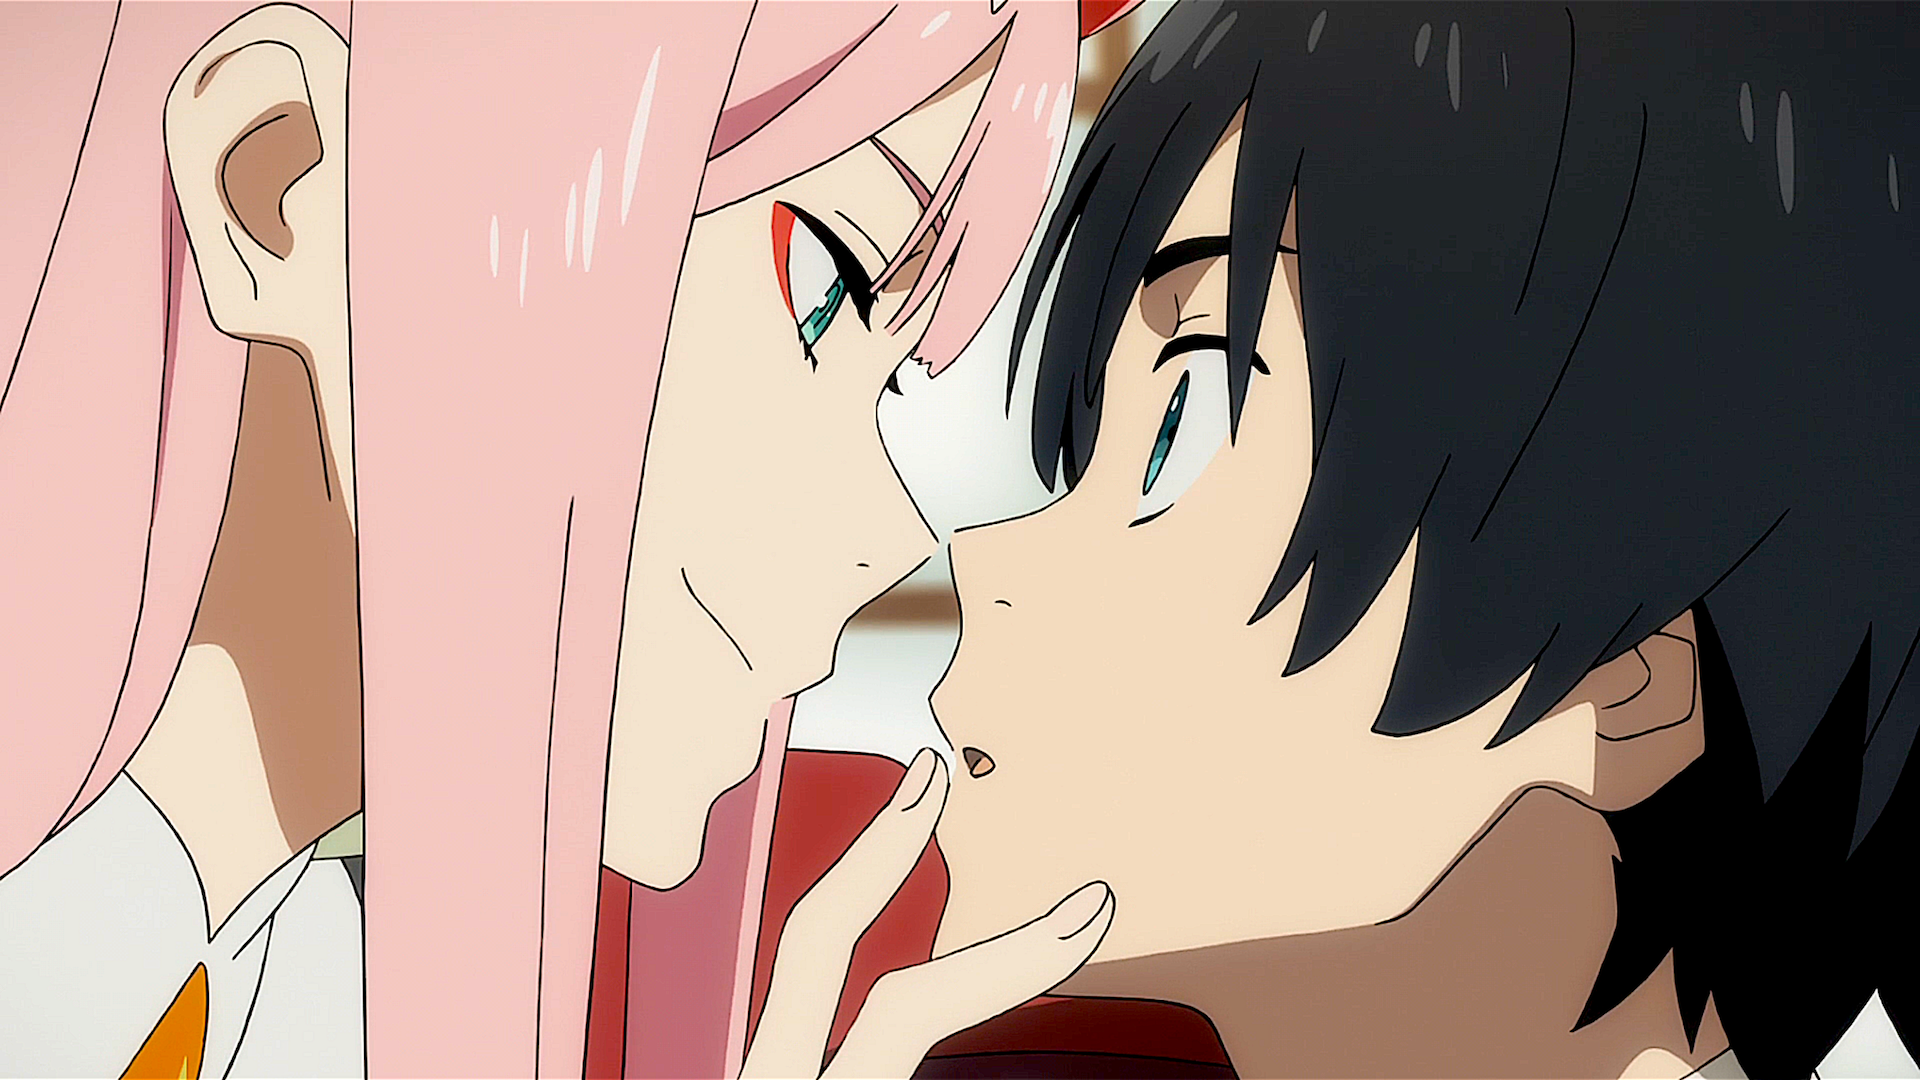 动漫 - Darling in the FranXX  Zero Two (Darling in the FranXX) Hiro (Darling in the FranXX) Green Eyes Pink Hair 动漫 壁纸